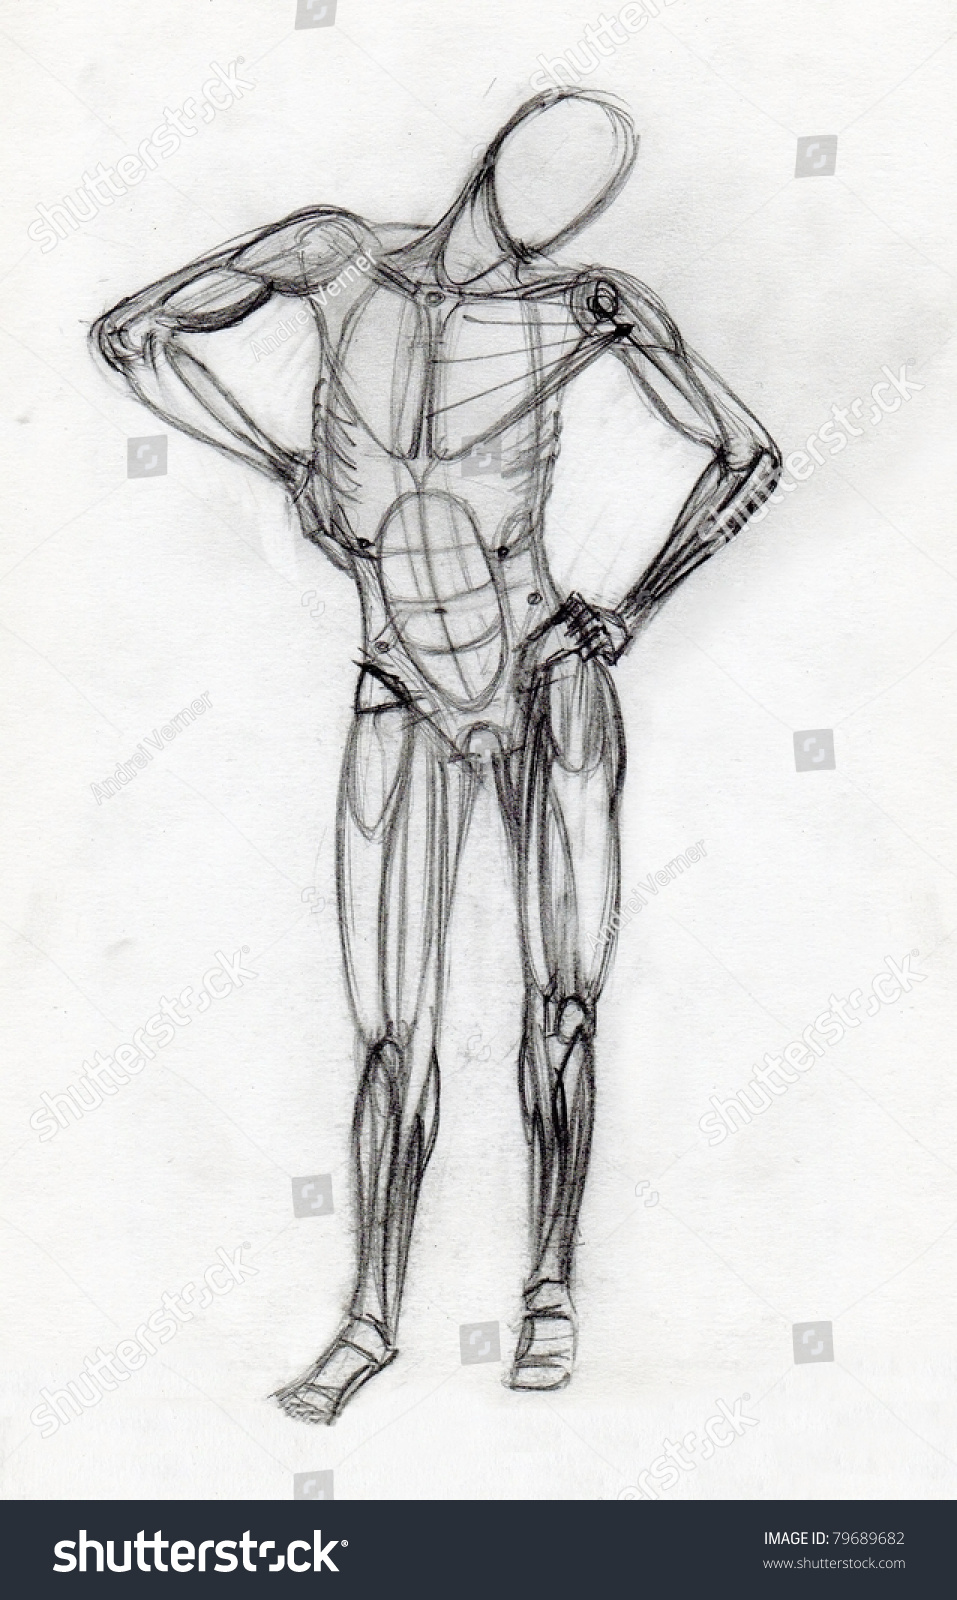 Human muscle figure traditional pencil drawing